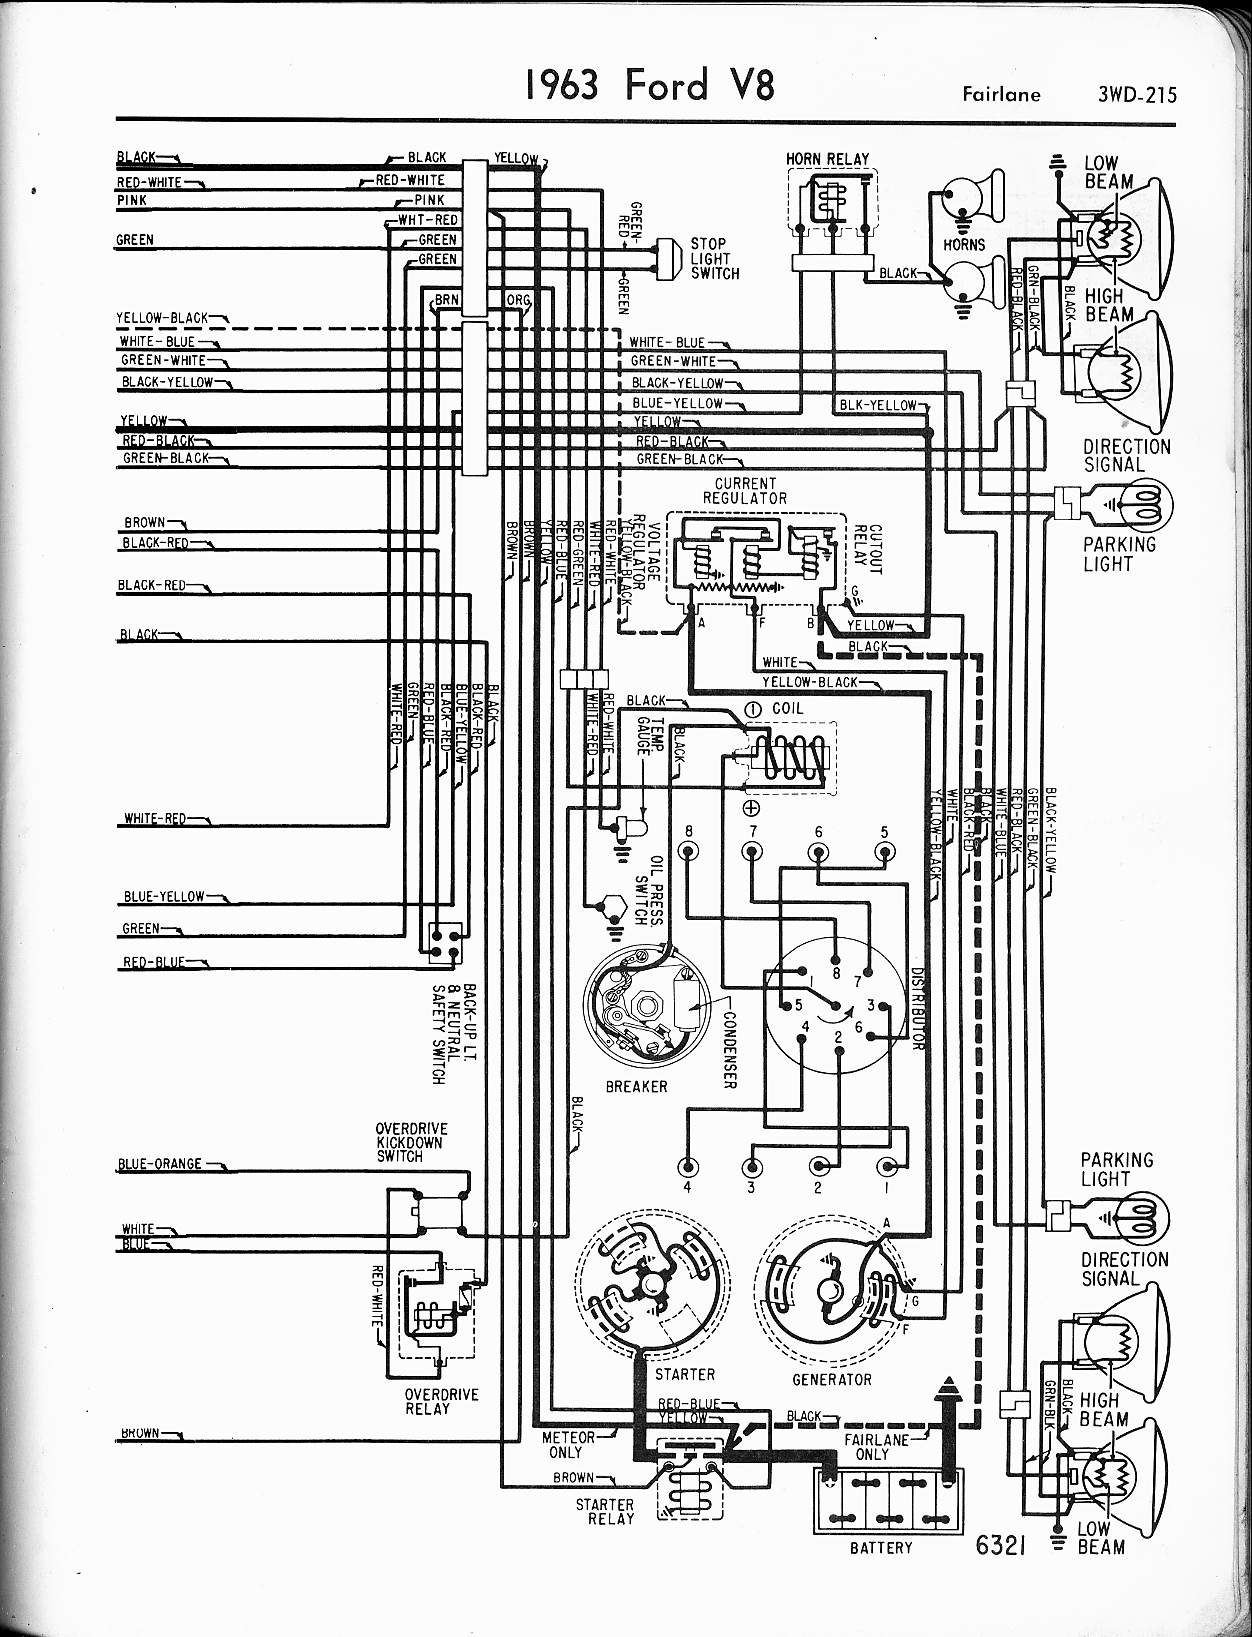 MWire5765 215 57 65 ford wiring diagrams ford car wiring diagrams at panicattacktreatment.co